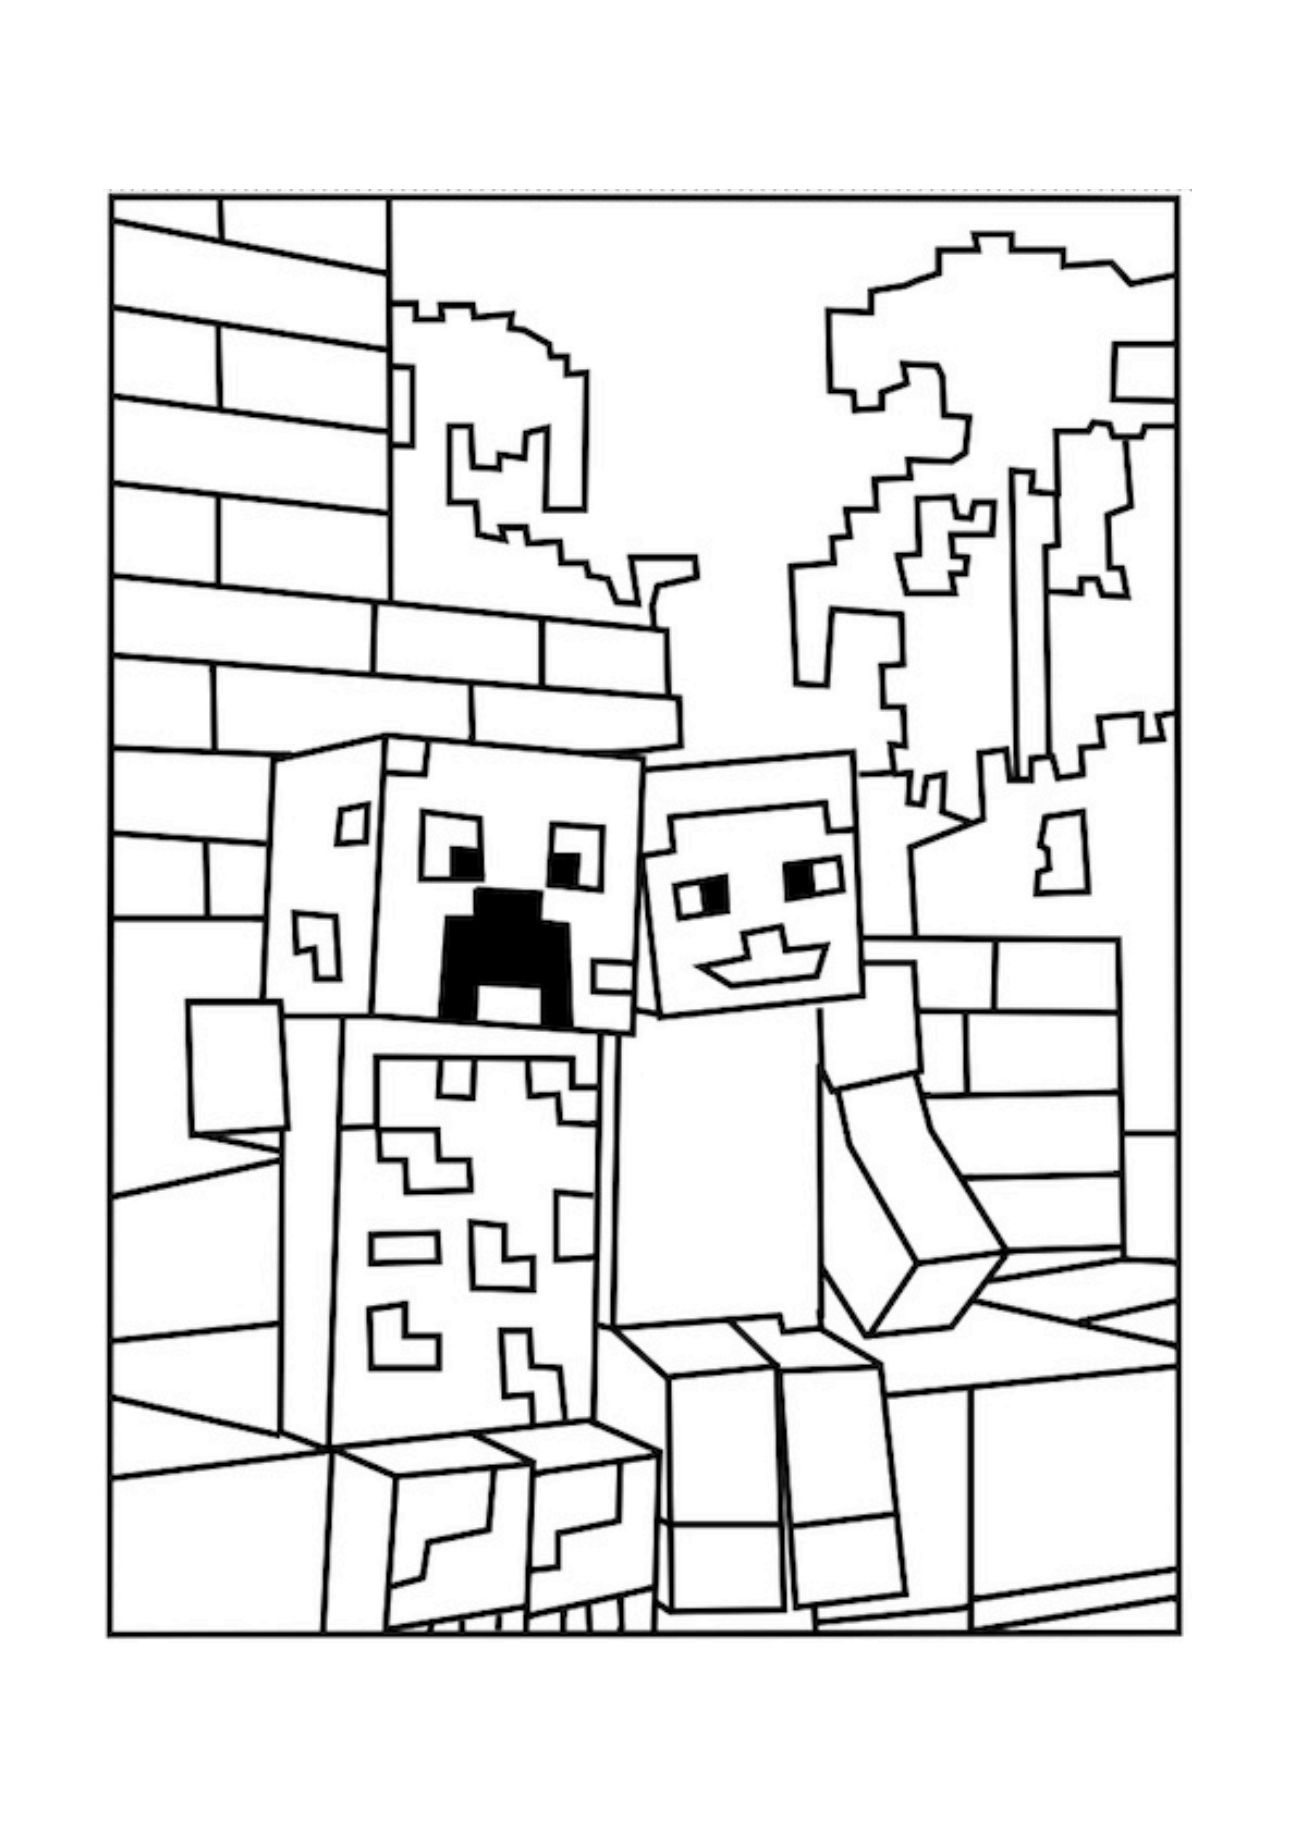 Minecraft Logo Coloring Pages At Getdrawings Com Free For Personal